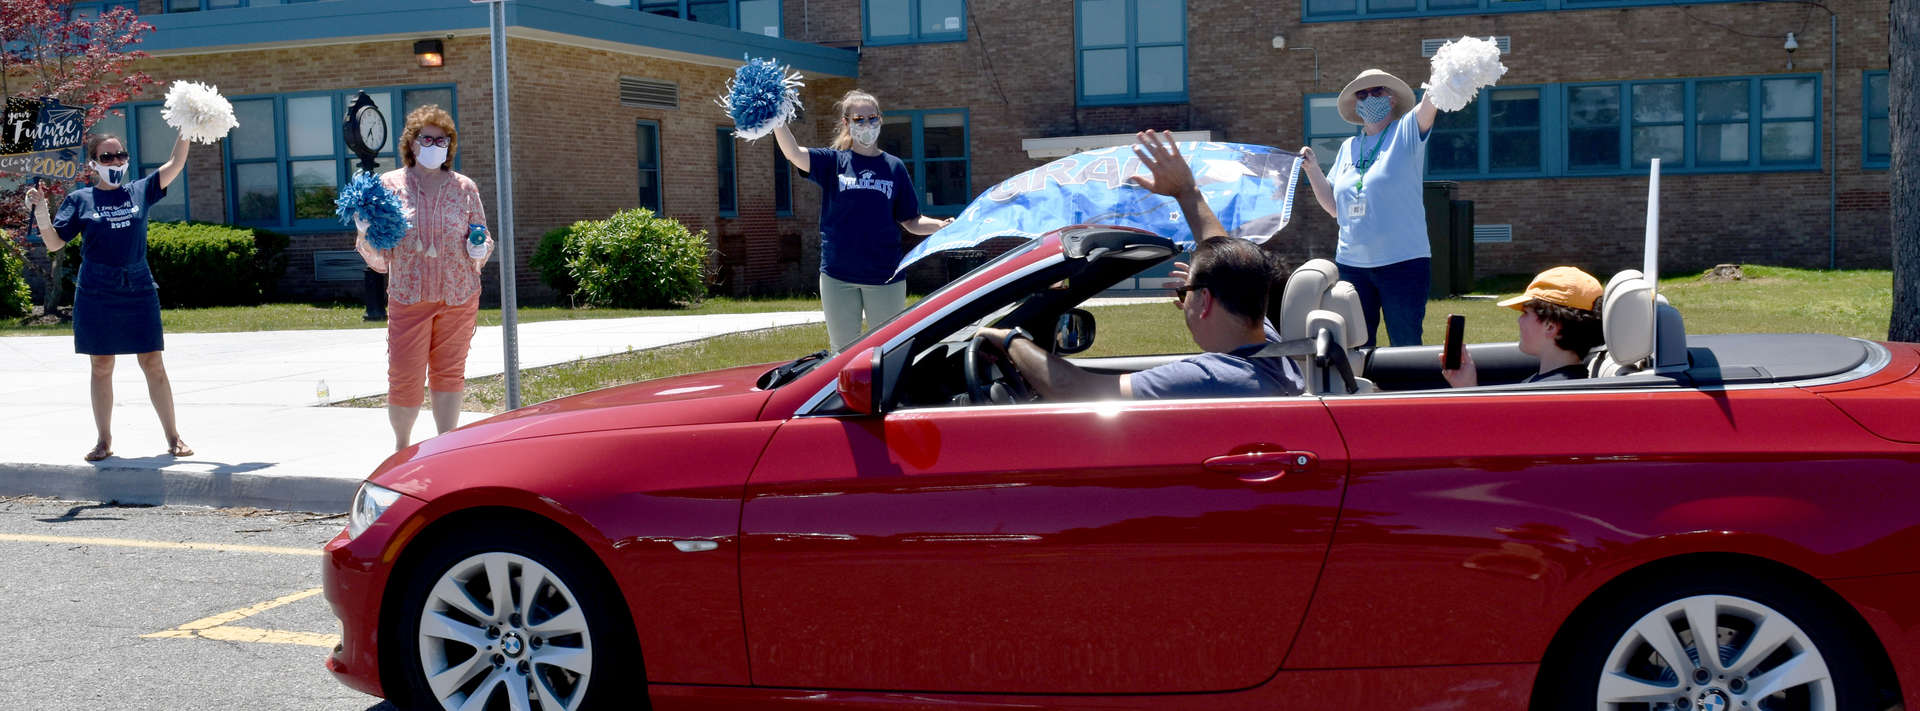 red convertible drives by waving teachers